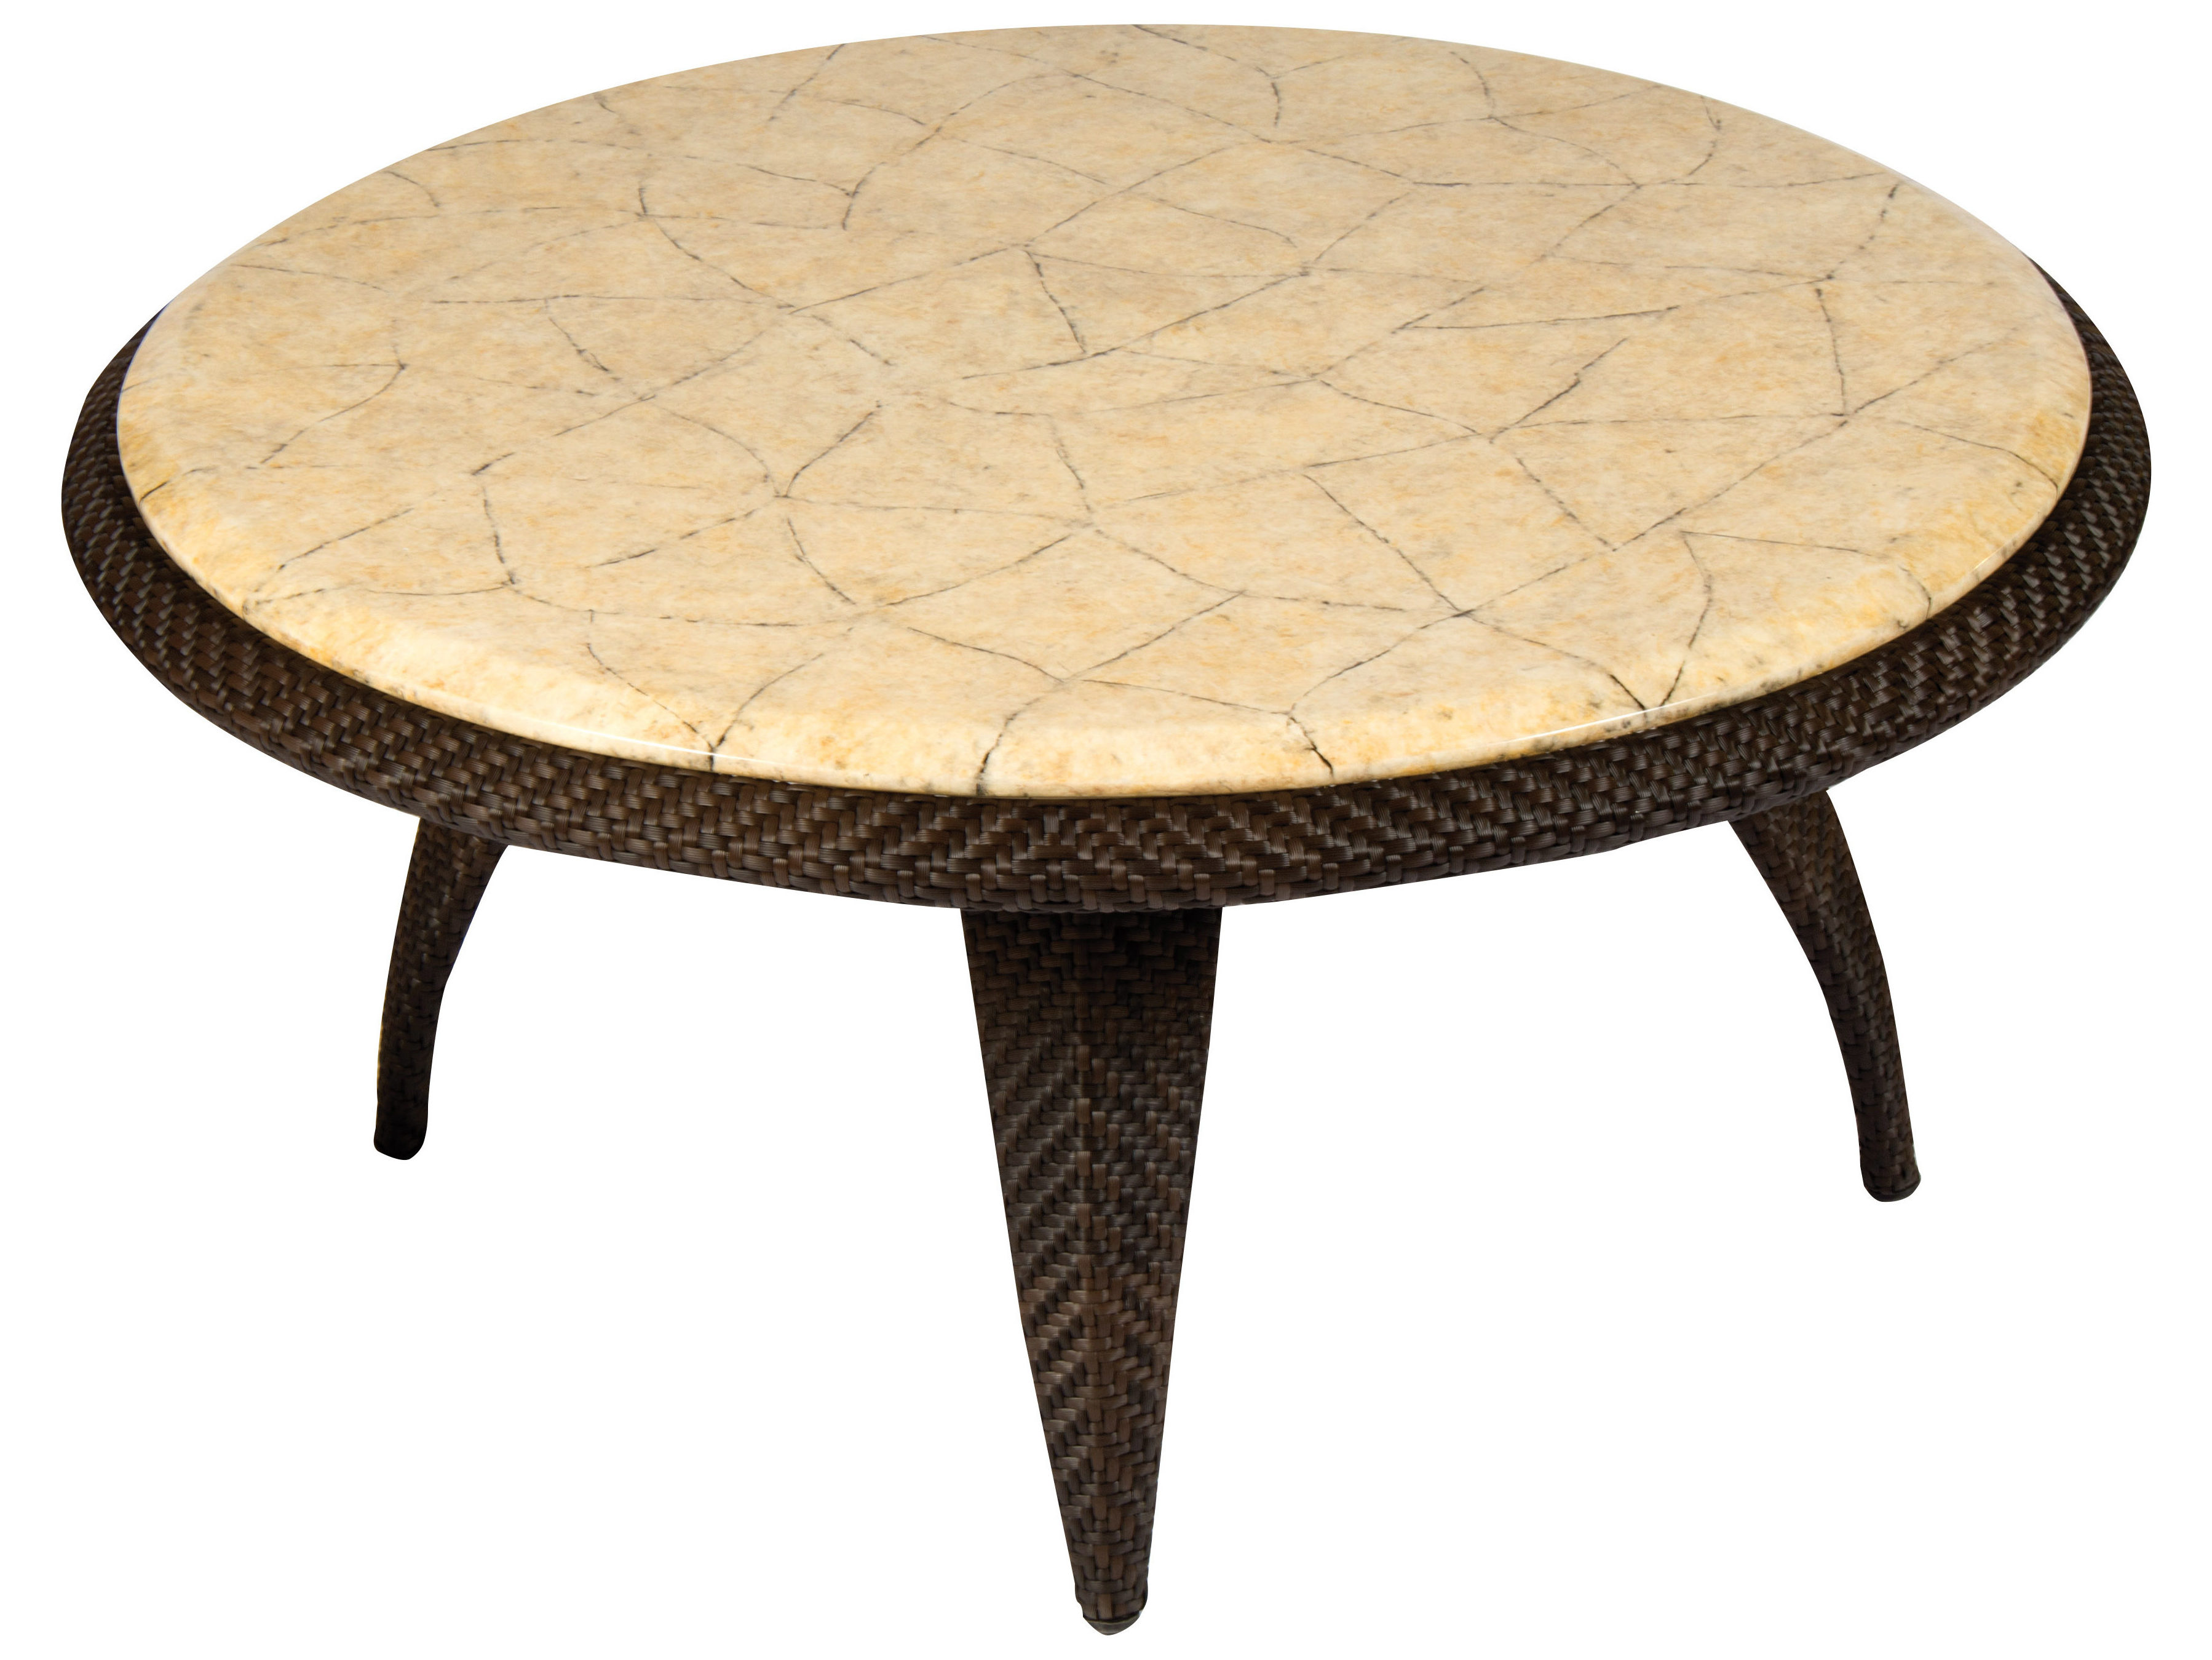 Trendy Stone Top Coffee Tables Regarding Whitecraft Bali Wicker 40 Round Stone Top Coffee Table (View 15 of 20)